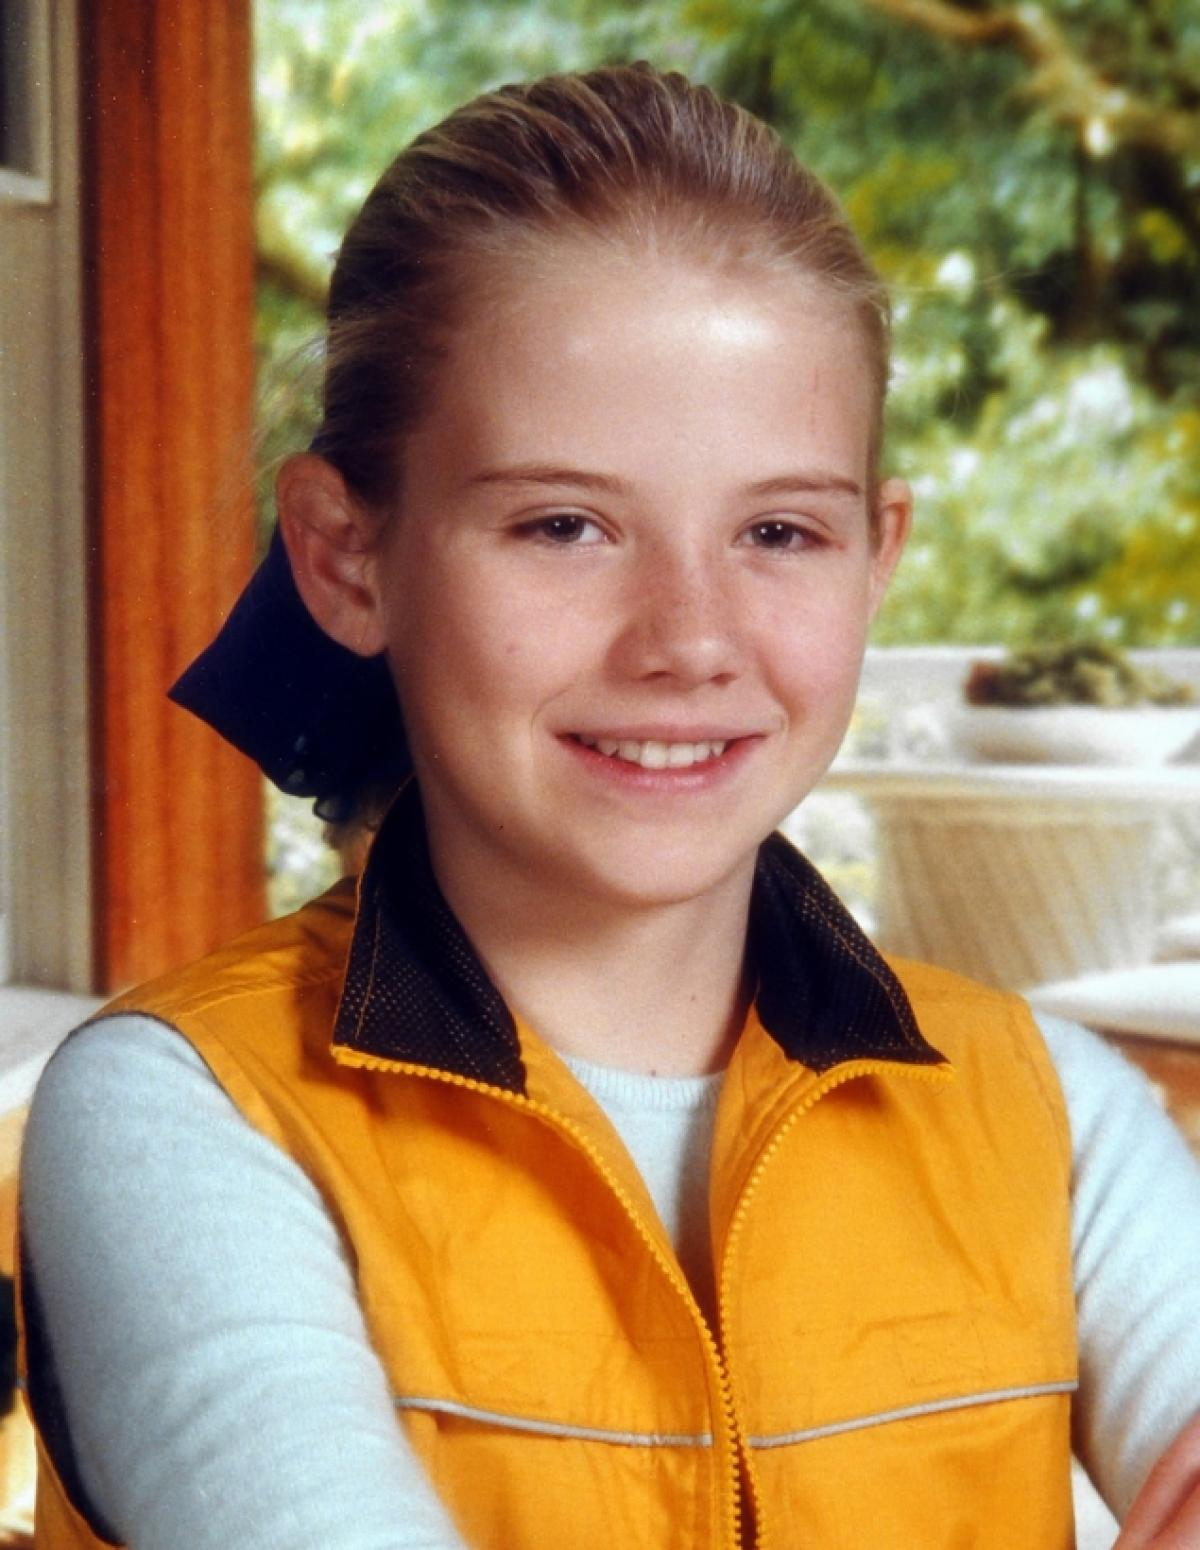 A photo of Elizabeth Smart as a little girl. She sits smiling at the camera in a yellow vest and long-sleeved white shirt.